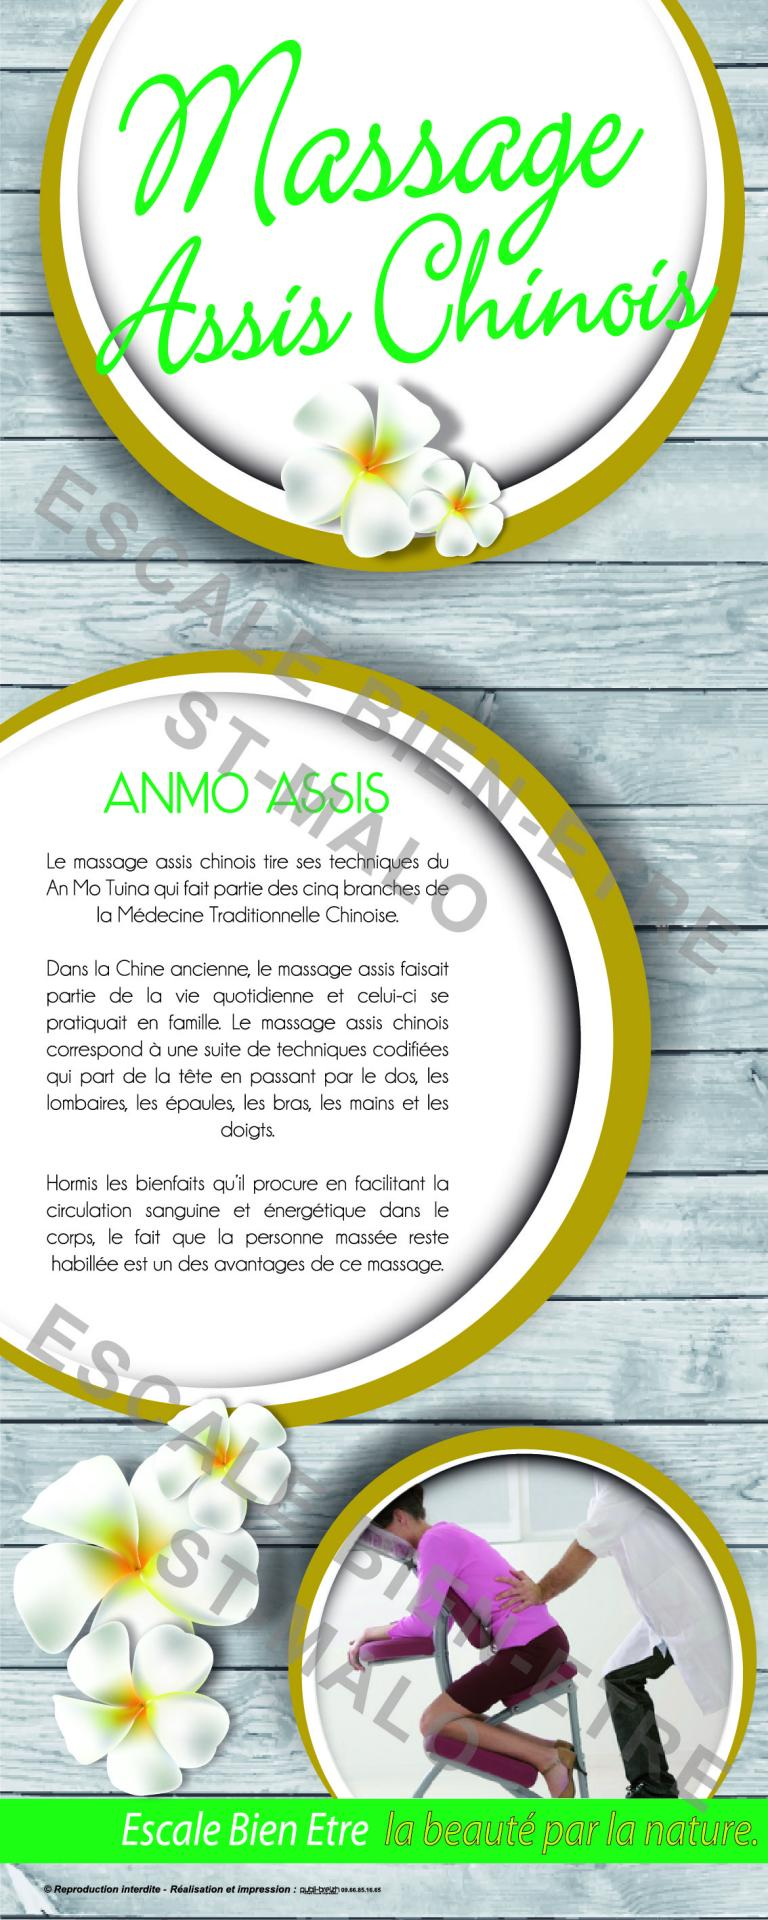 Anmo assis affiche 01 1